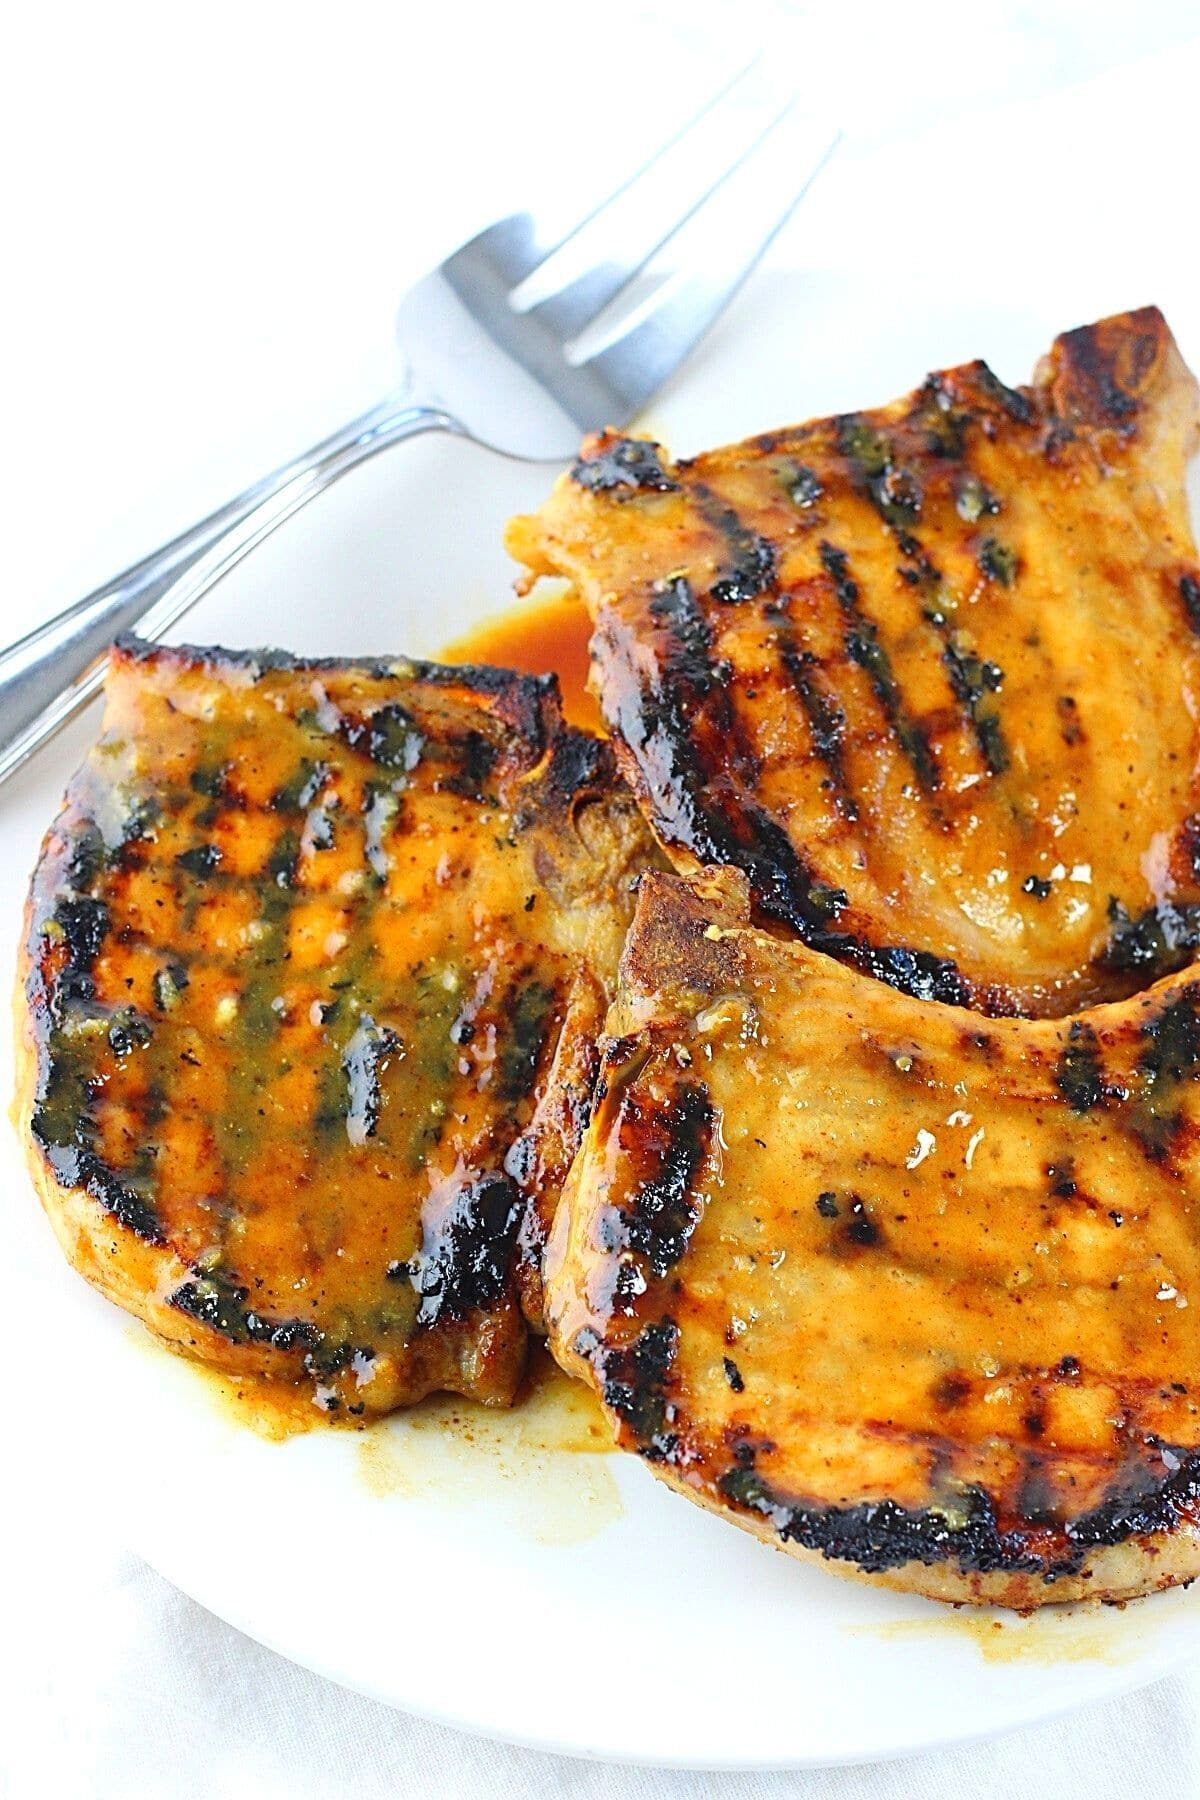 honey mustard grilled pork chops on a white plate with a serving fork on the side